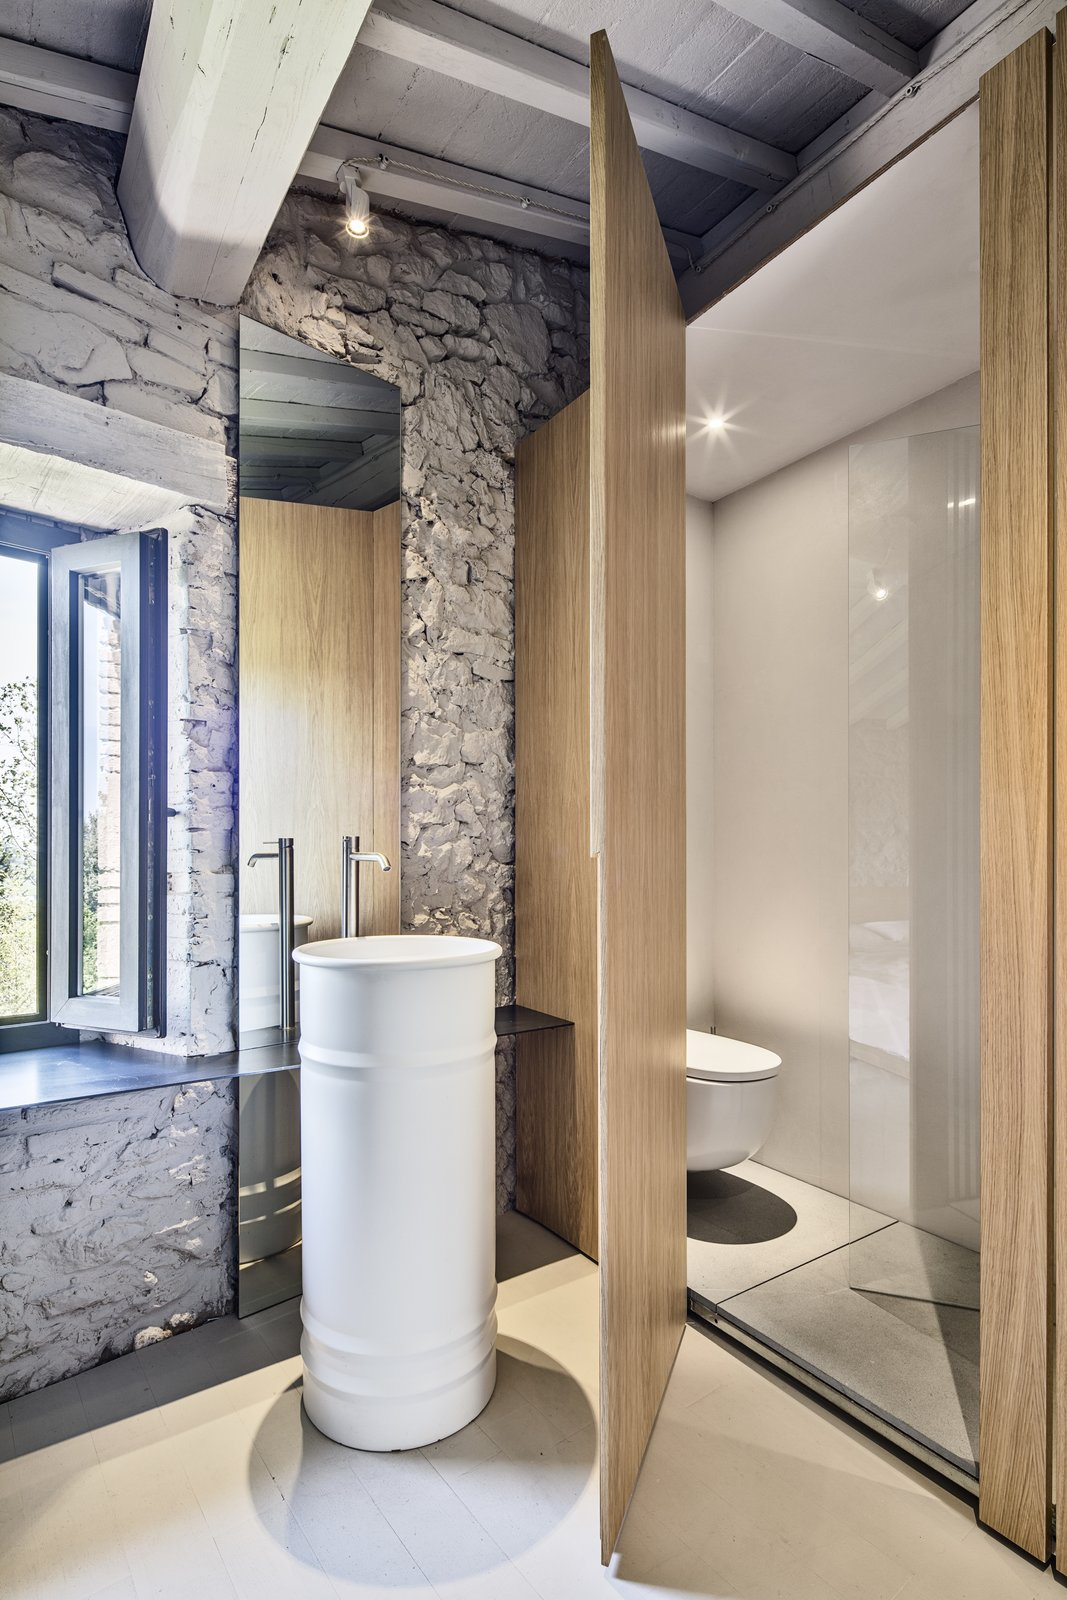 "Bath, Pedestal, Ceiling, One Piece, Concrete, and Painted Wood While using the washbasin, the owner can enjoy outdoor views. ""The 'rarefacted' wooden wall generates a light visual relationship between bedroom and bathroom spaces,"" says Cisi.  Bath Painted Wood Photos from An Old Stone Building in Tuscany Becomes a Modern Hideaway"